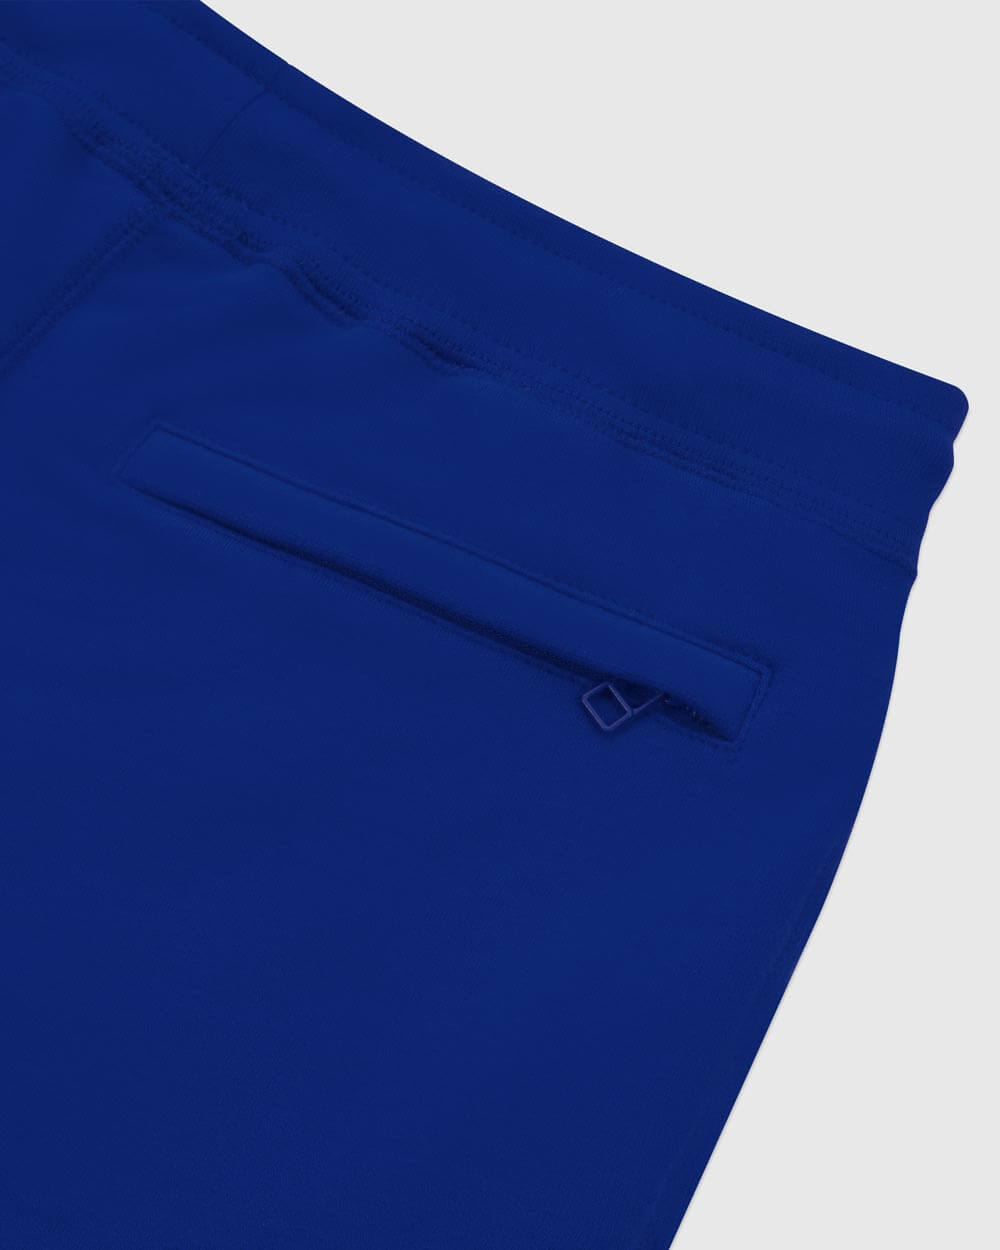 MID-WEIGHT FRENCH TERRY SWEATPANT - ROYAL BLUE